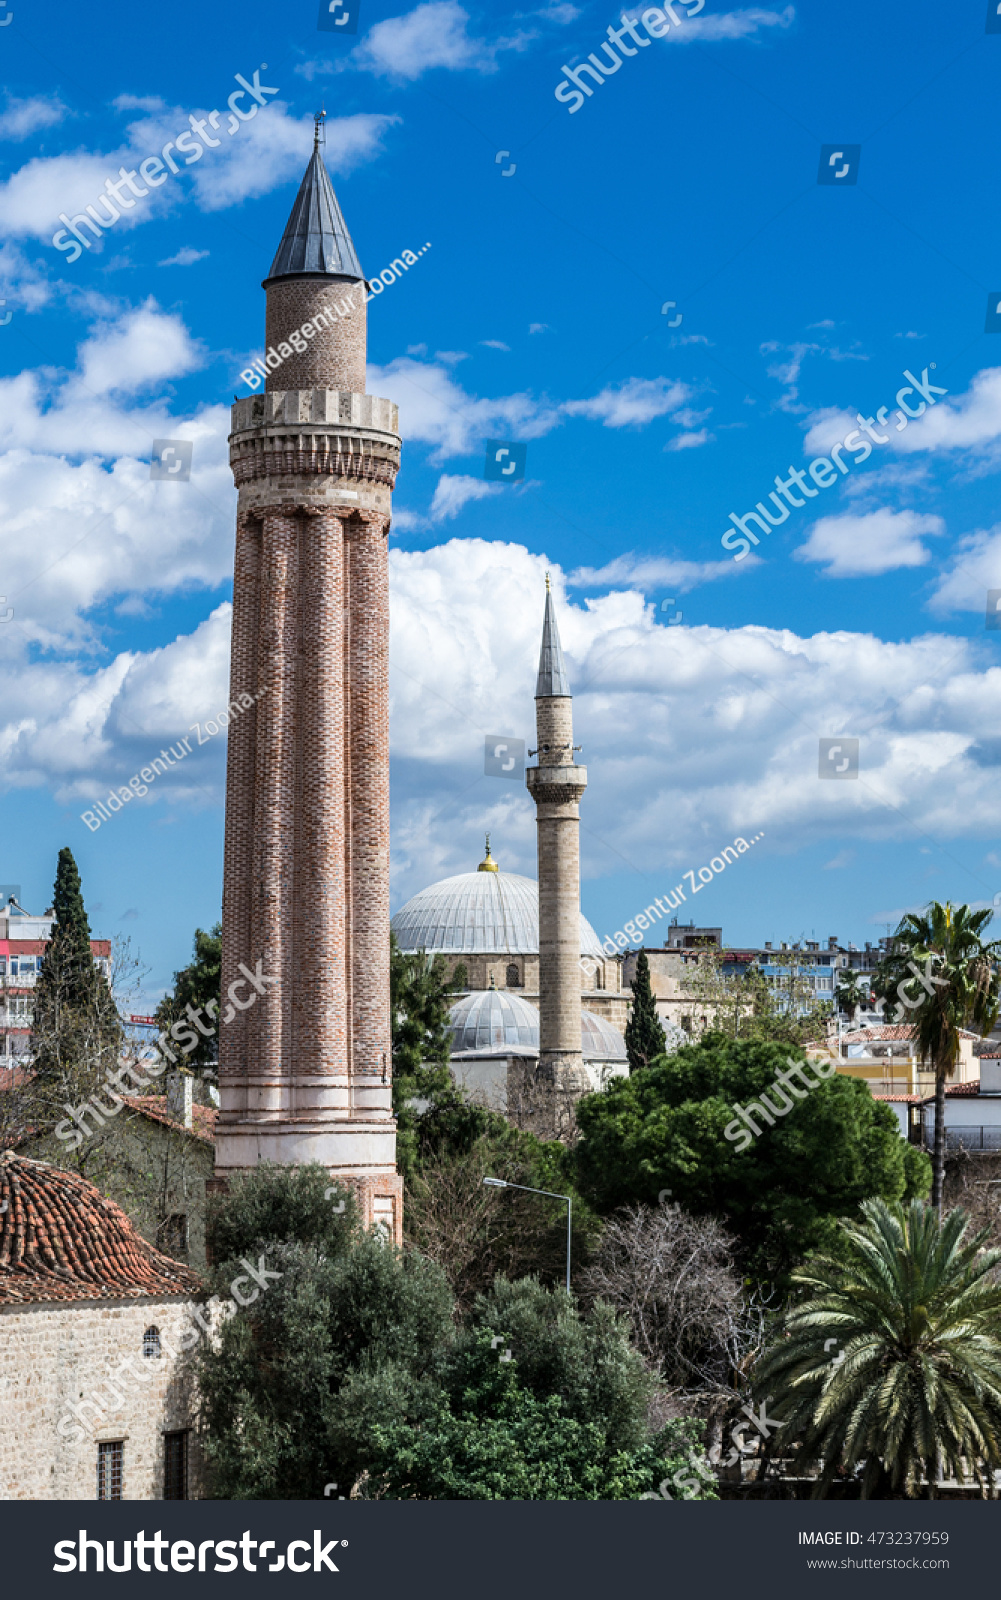 red minaret, symbol of antalya, turkey. old town,antalya | ez canvas